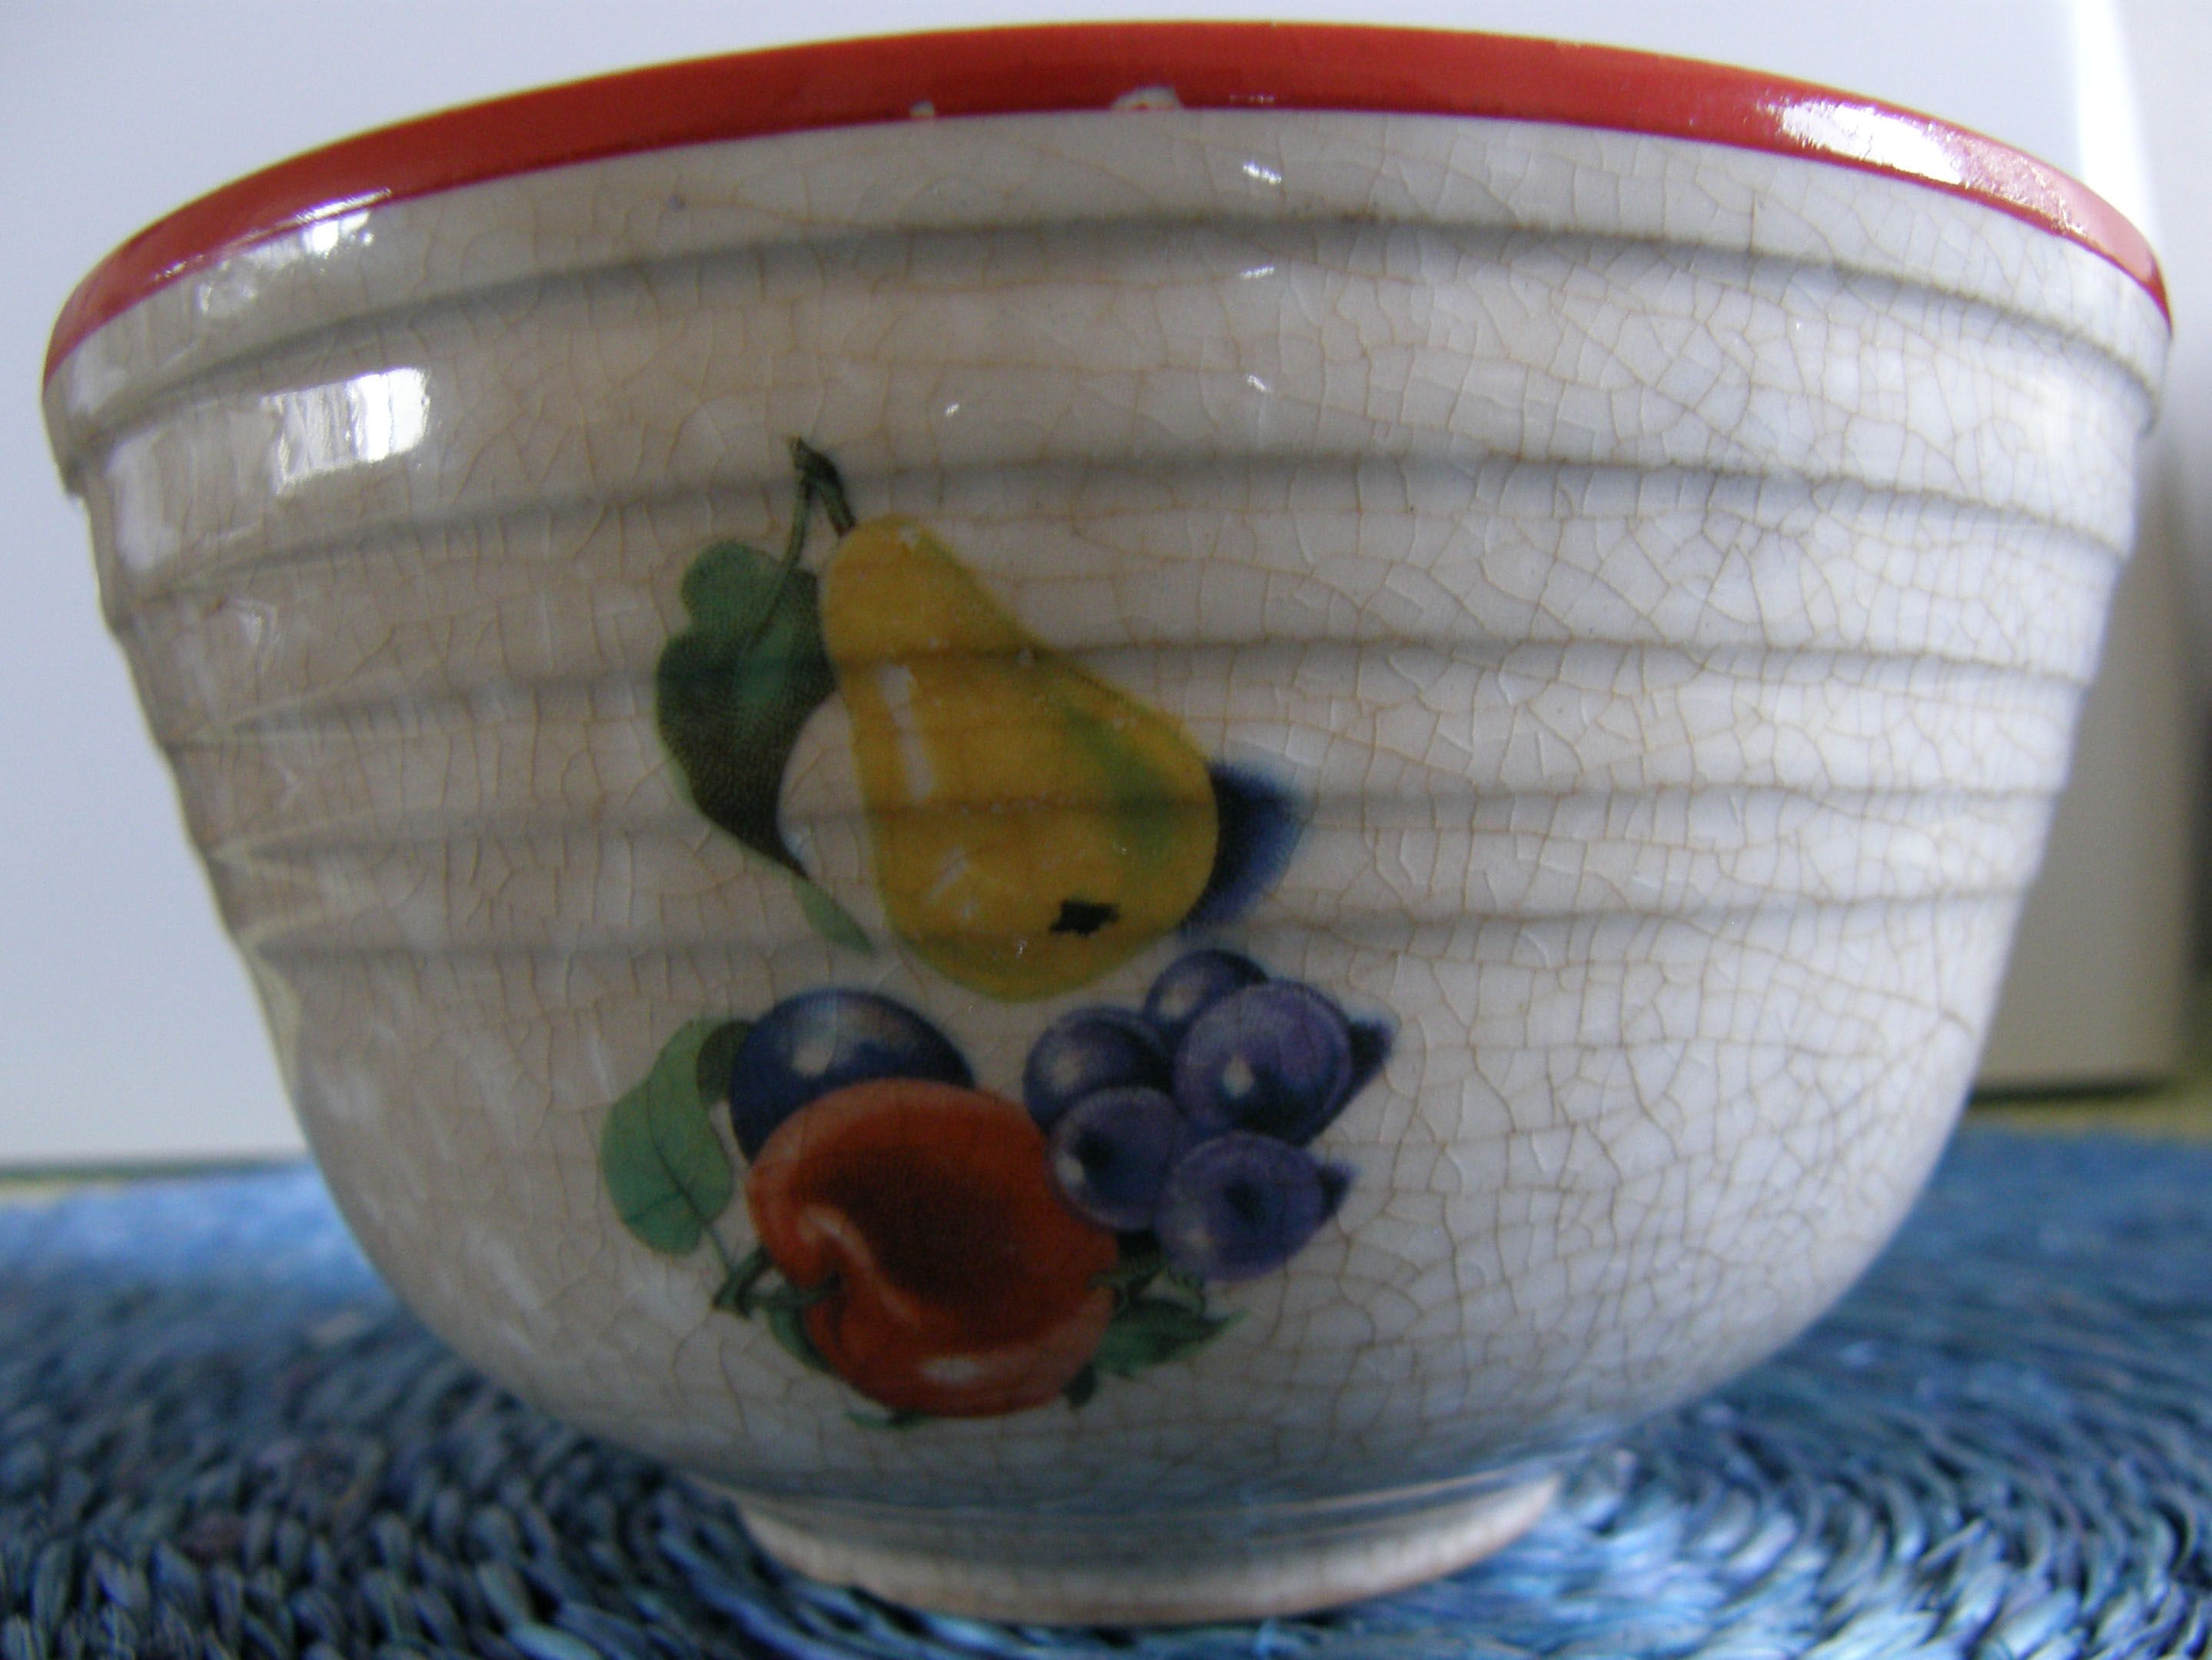 Vintage Bake Oven Kitchen Pottery Mixing Bowl With Fruit